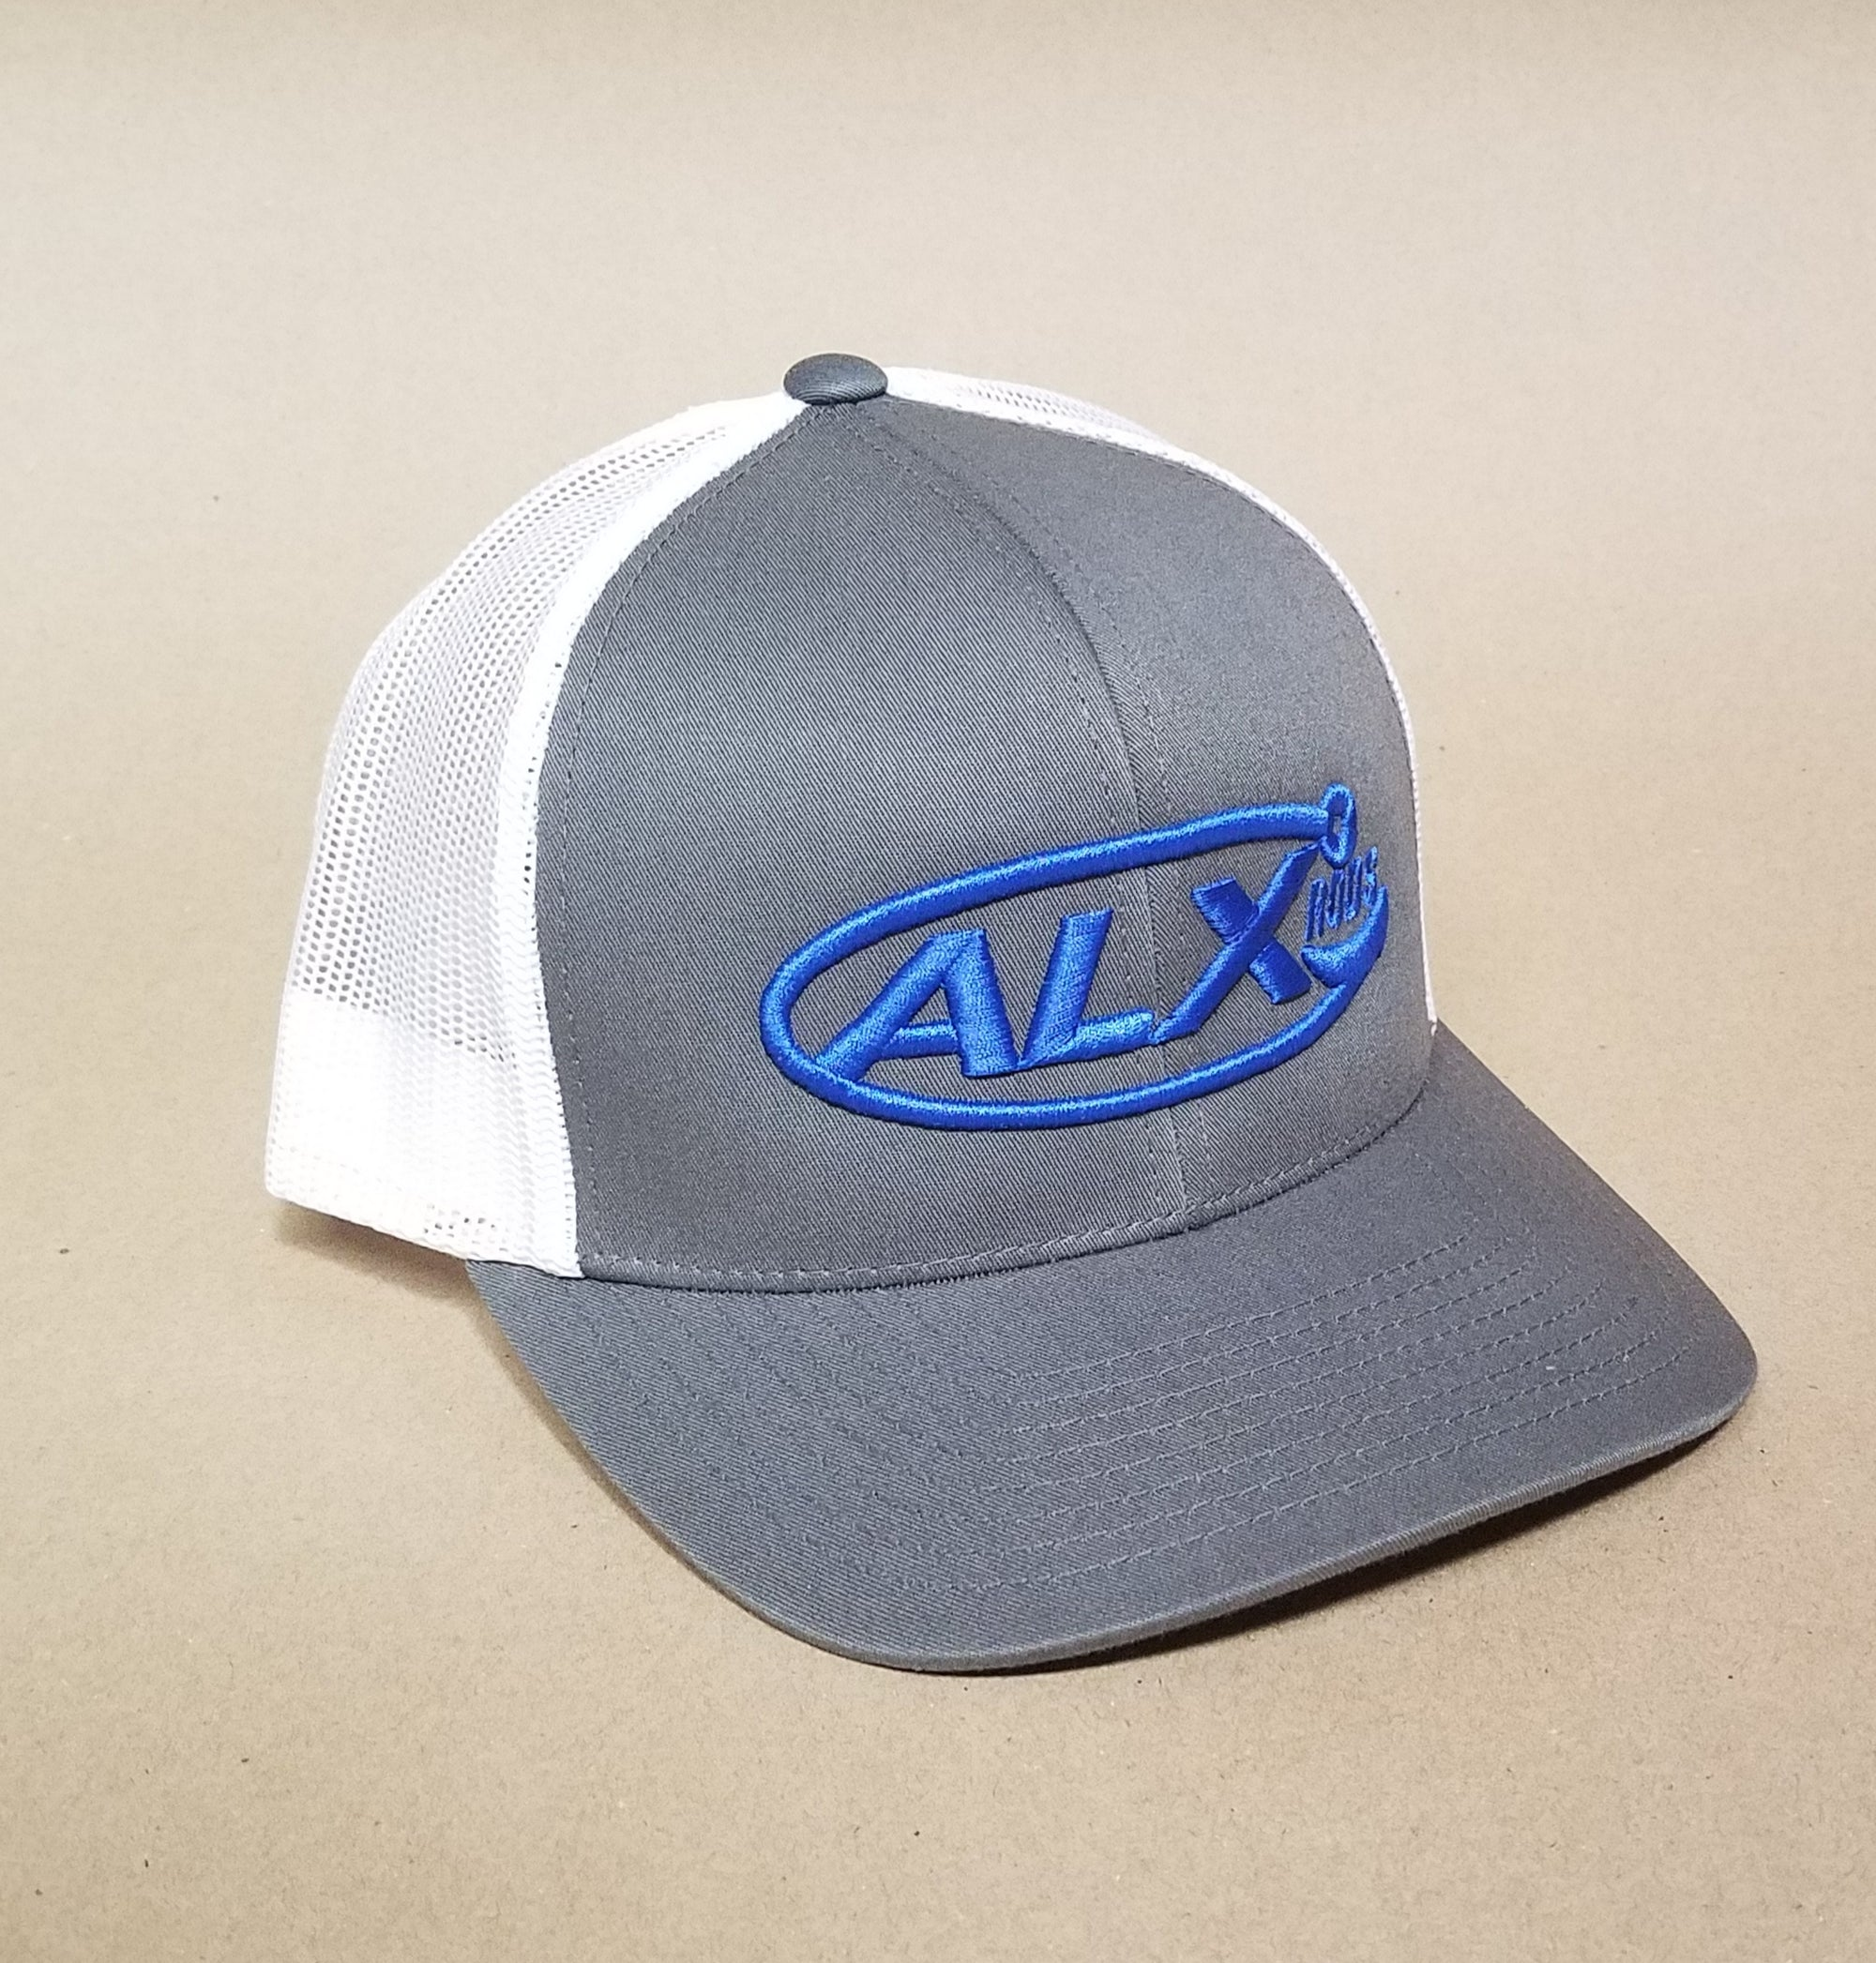 ALX Graphite/White Snapback Pacific Headwear Hat